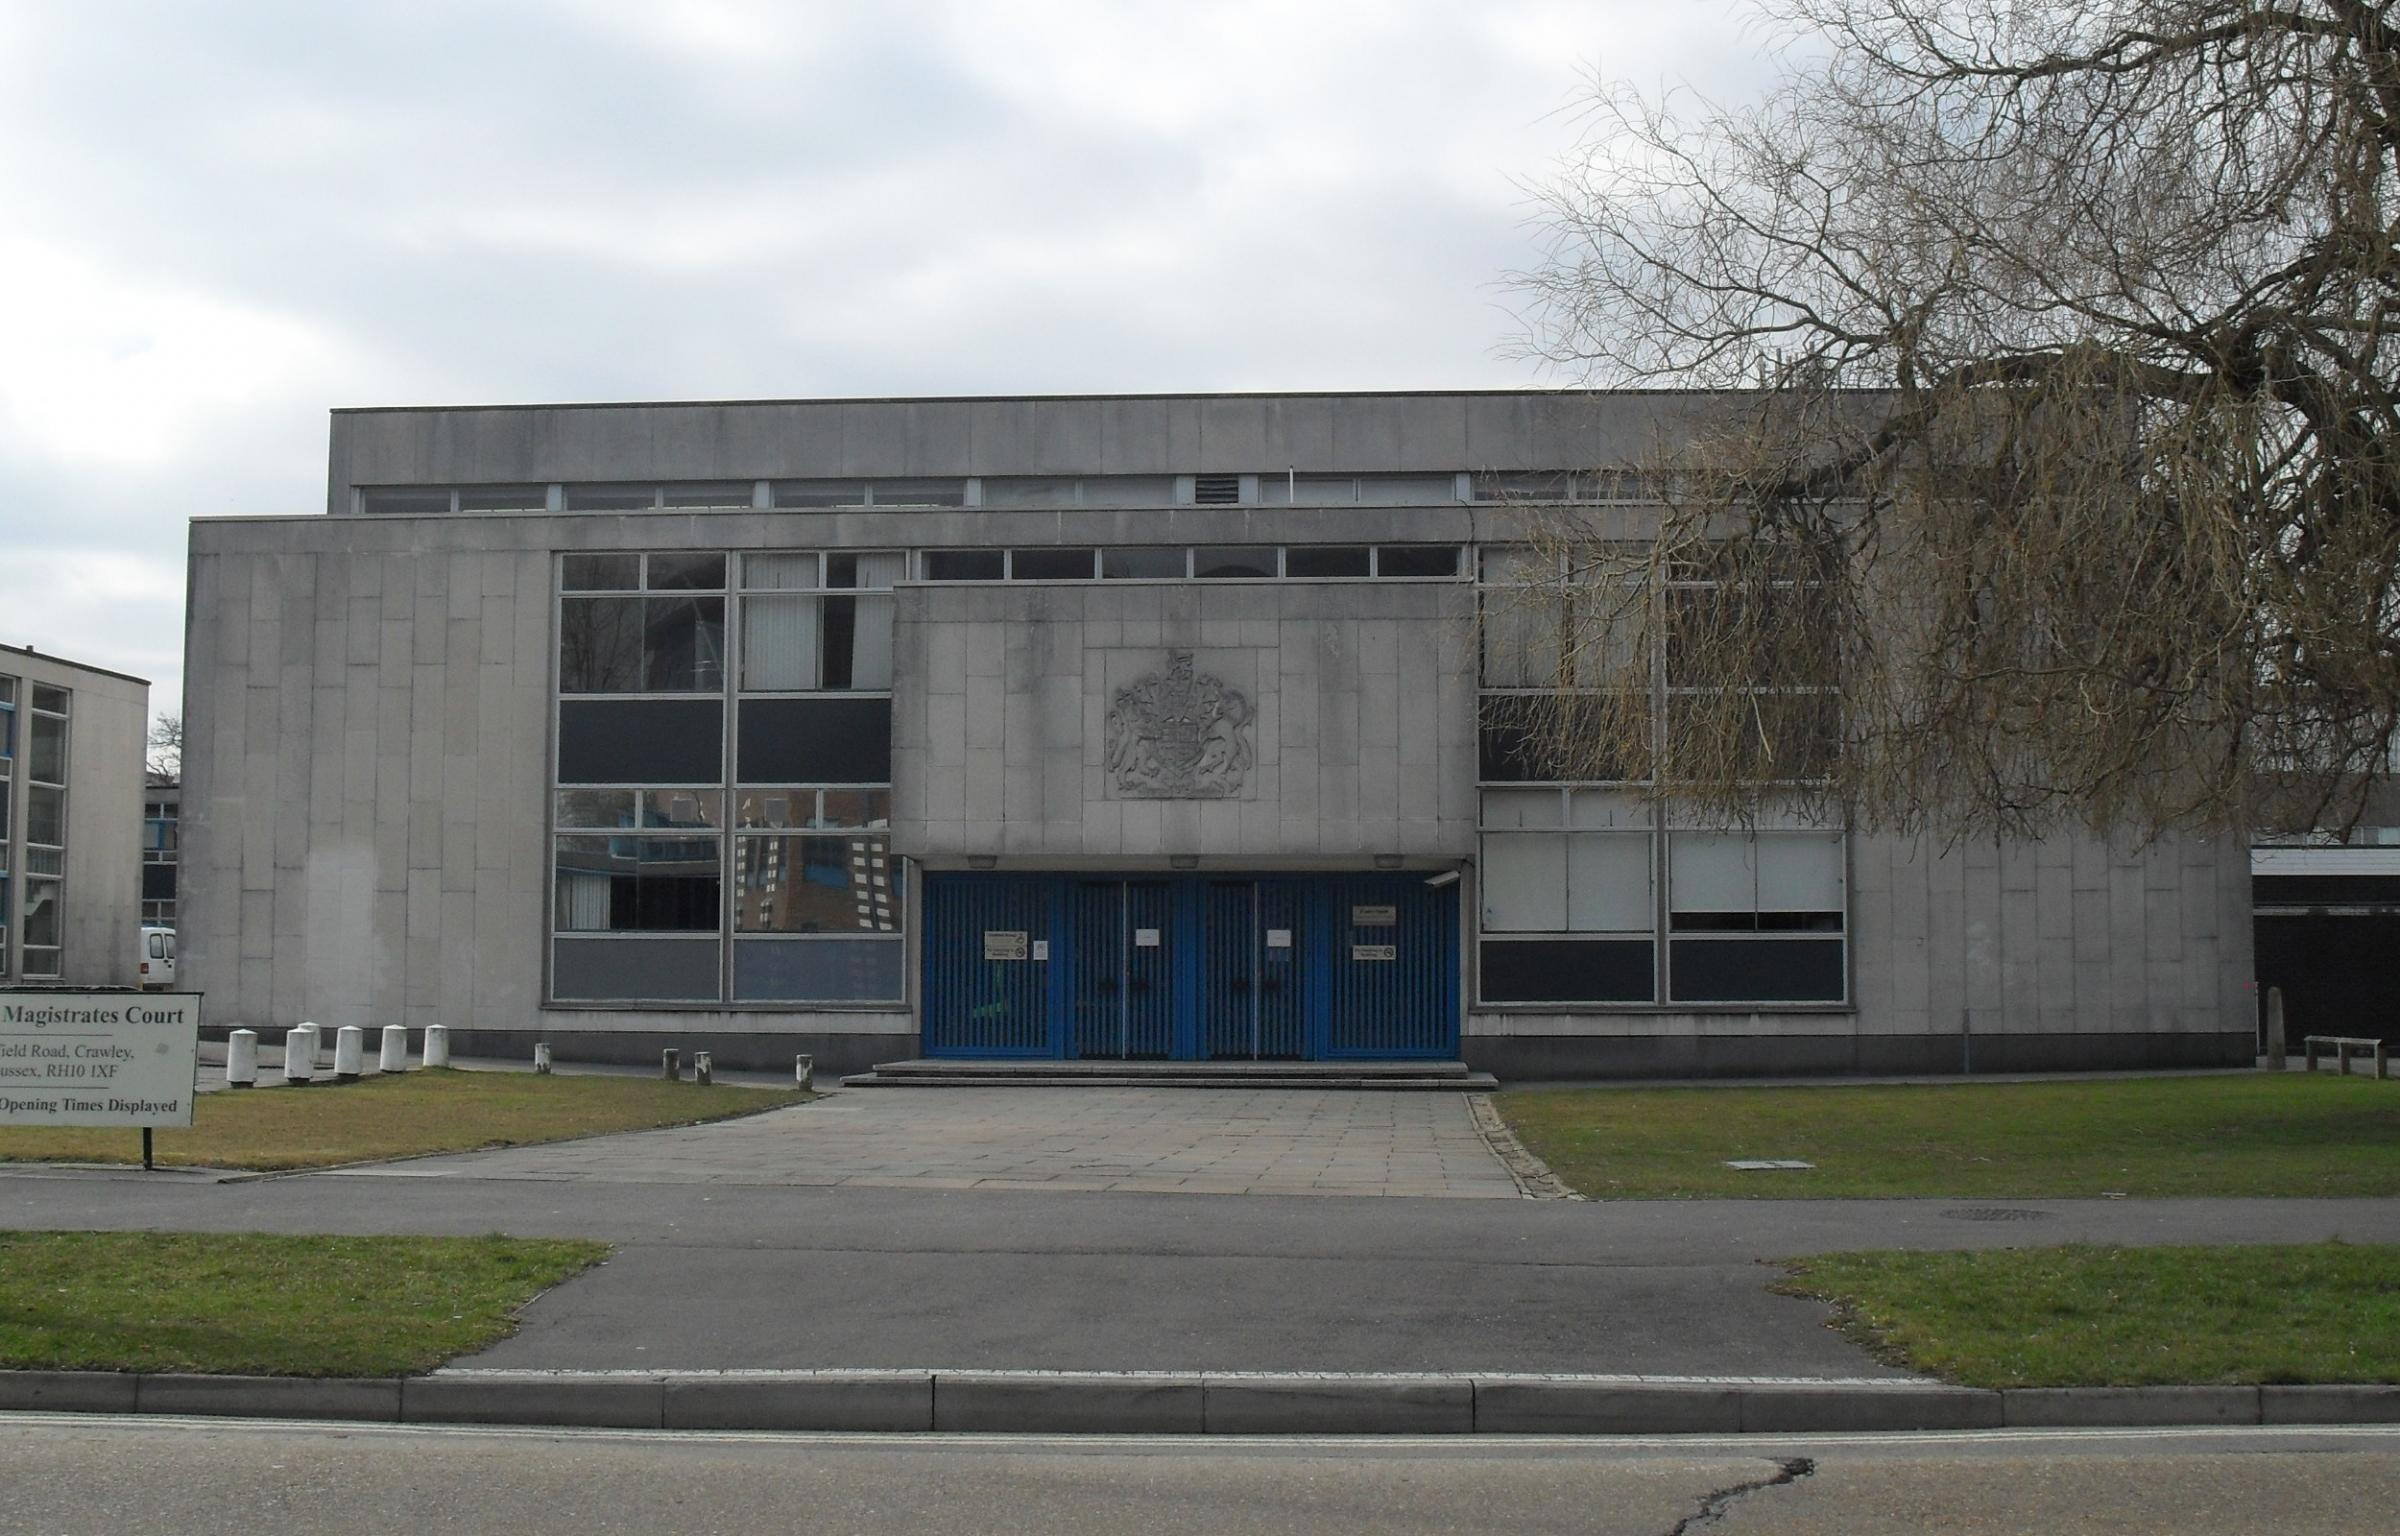 Crawley Magistrates' Court